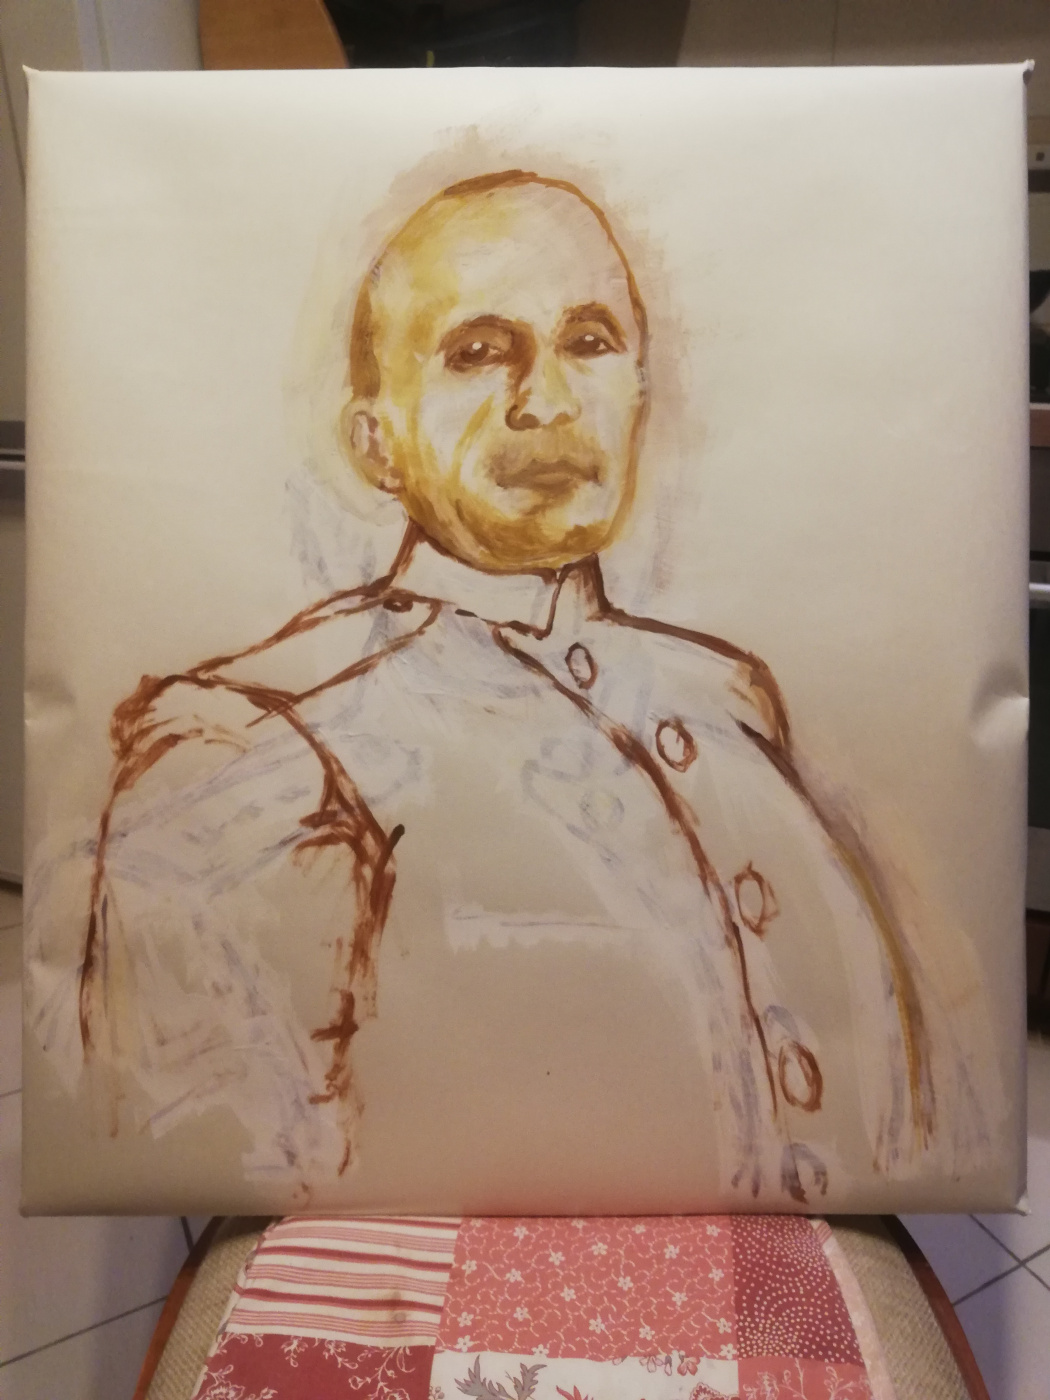 Andrew Markoff. Sketch for the portrait of the senior midshipman